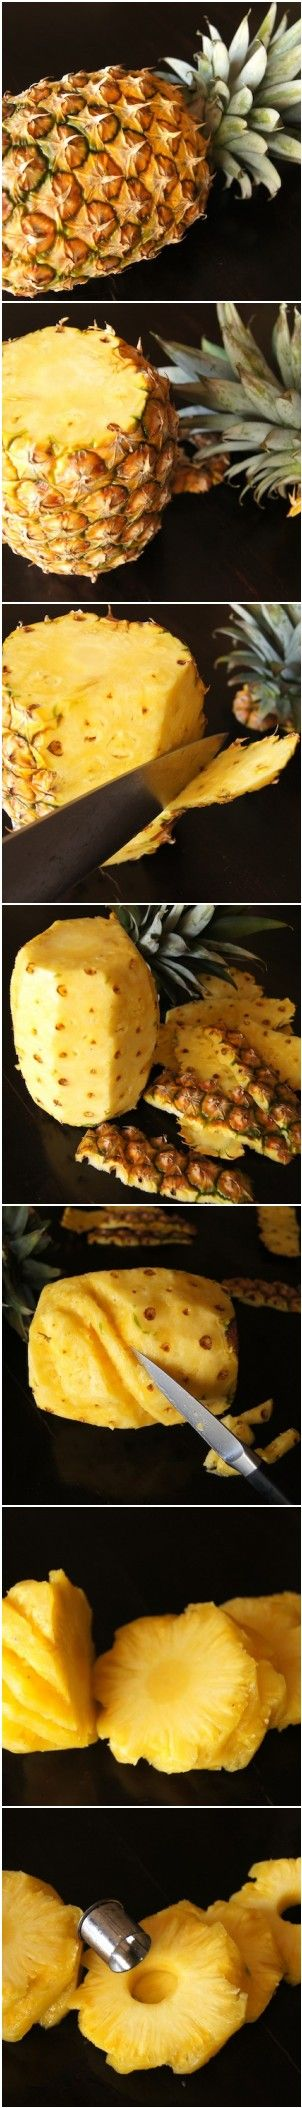 How to Peel and Cut a Pineapple | cookingontheweekends.com